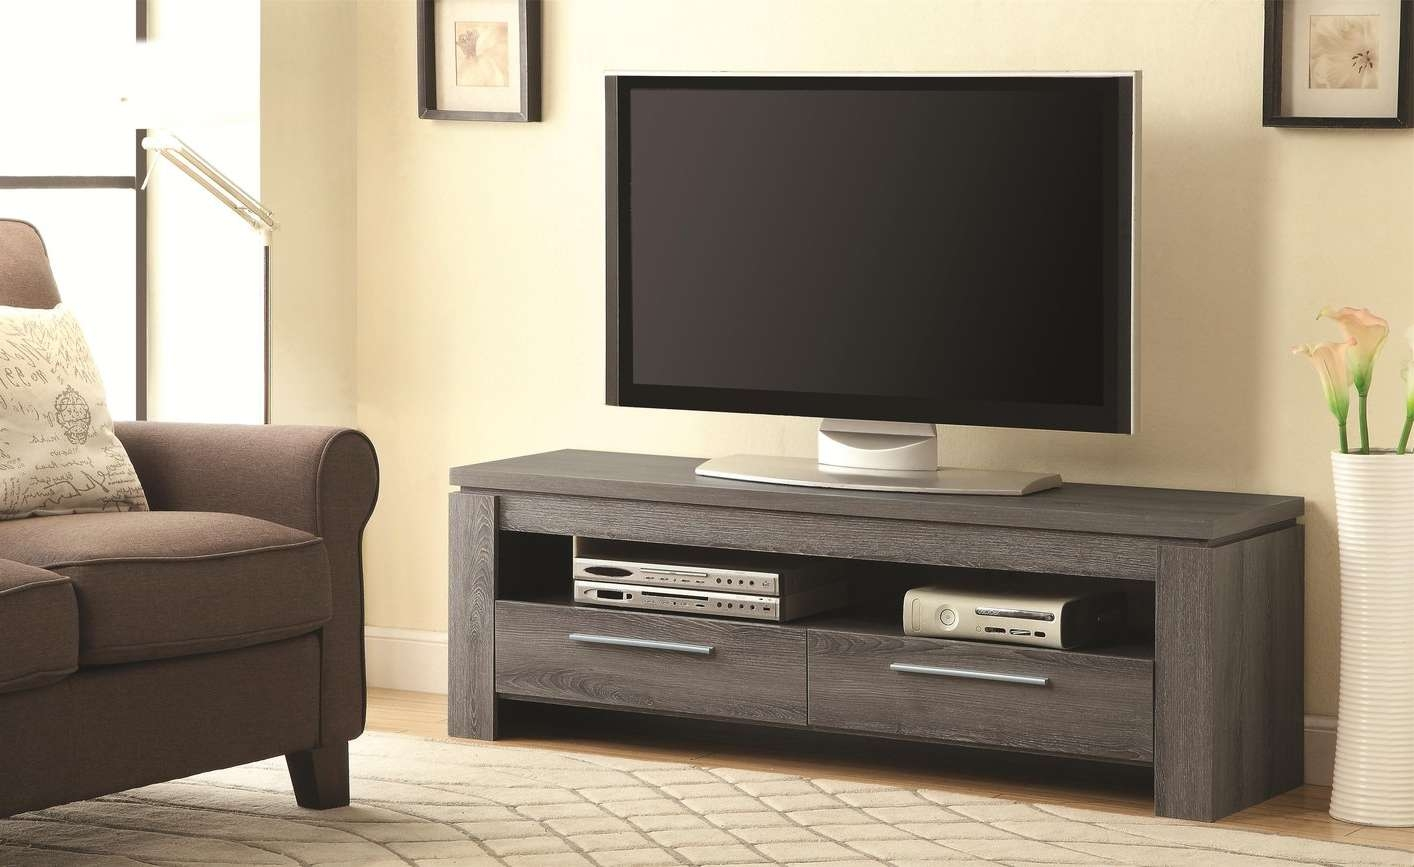 Grey Wood Tv Stand – Steal A Sofa Furniture Outlet Los Angeles Ca In Wooden Tv Cabinets (View 7 of 20)